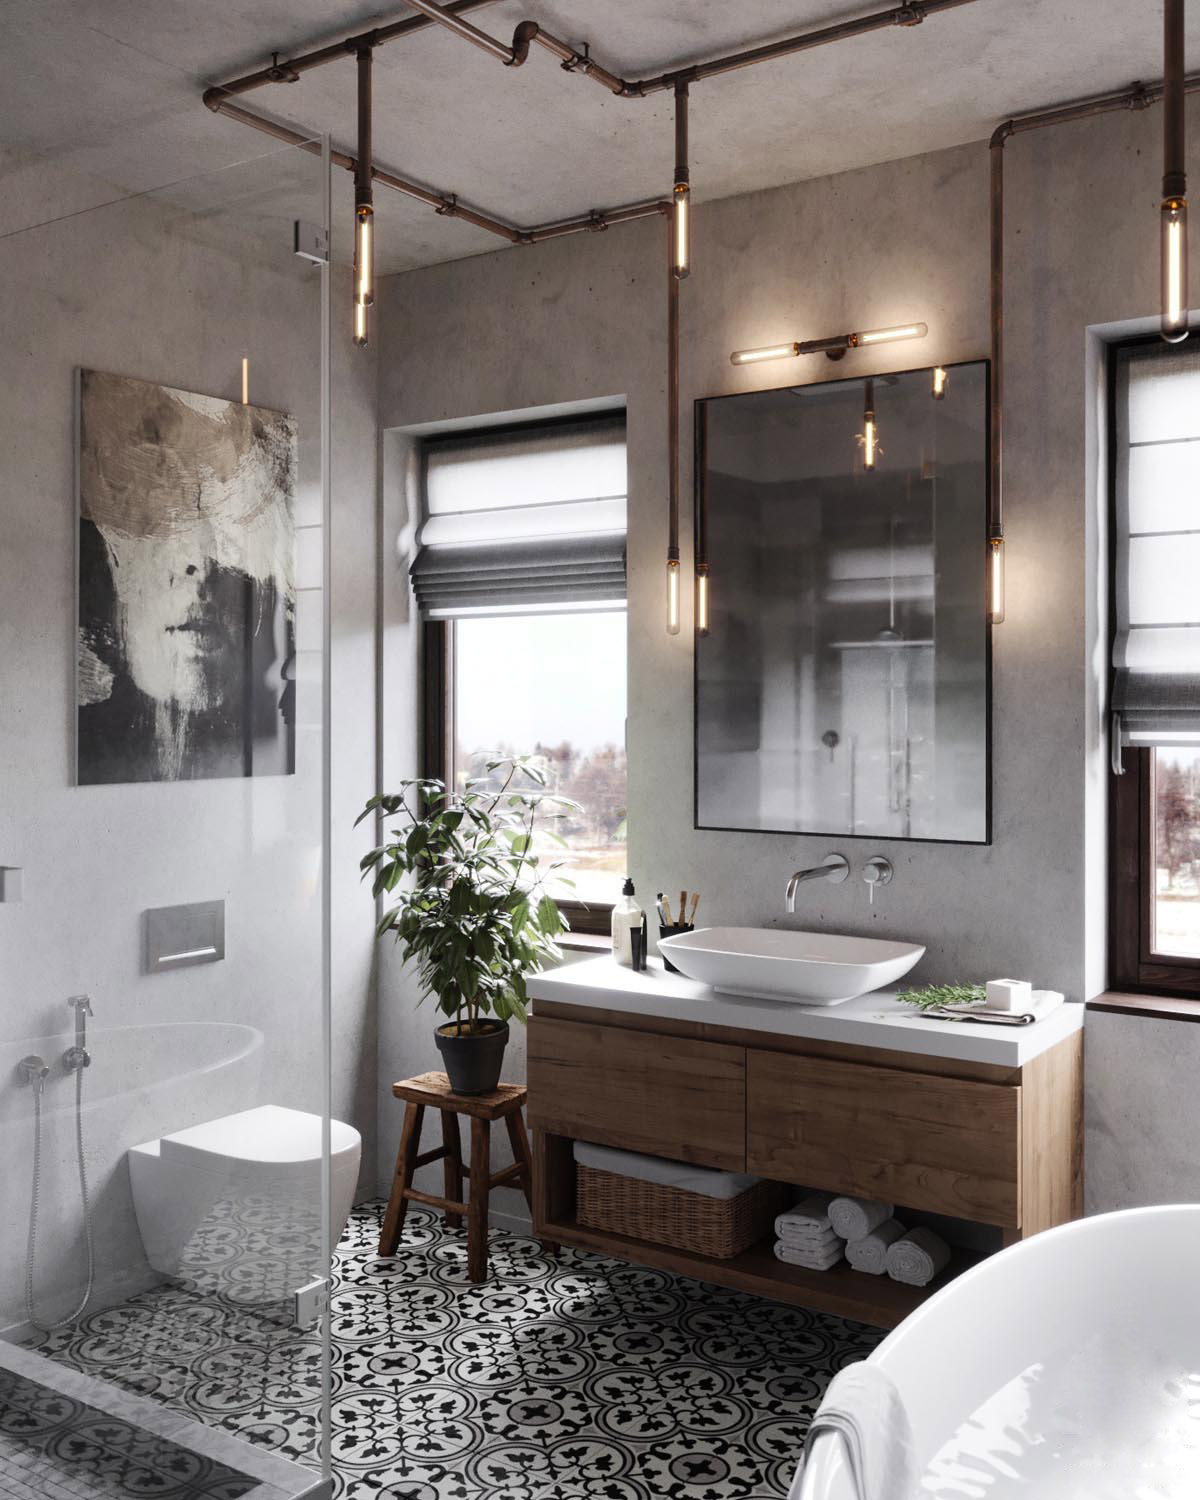 Bathroom Ideas: 51 Industrial Style Bathrooms Plus Ideas & Accessories You